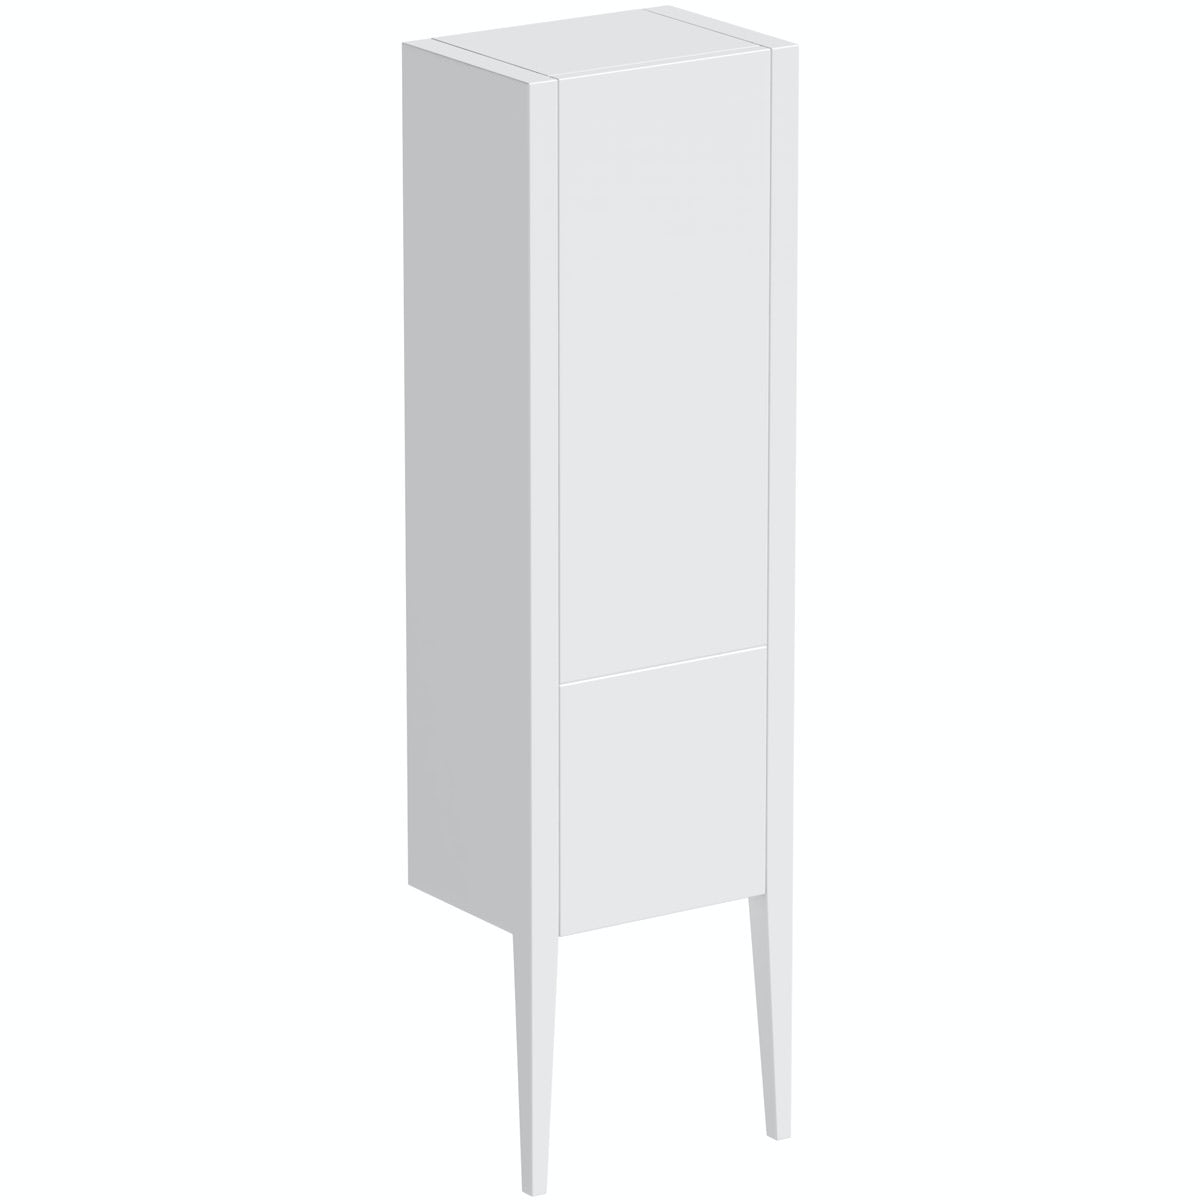 Mode Hale white gloss storage cabinet